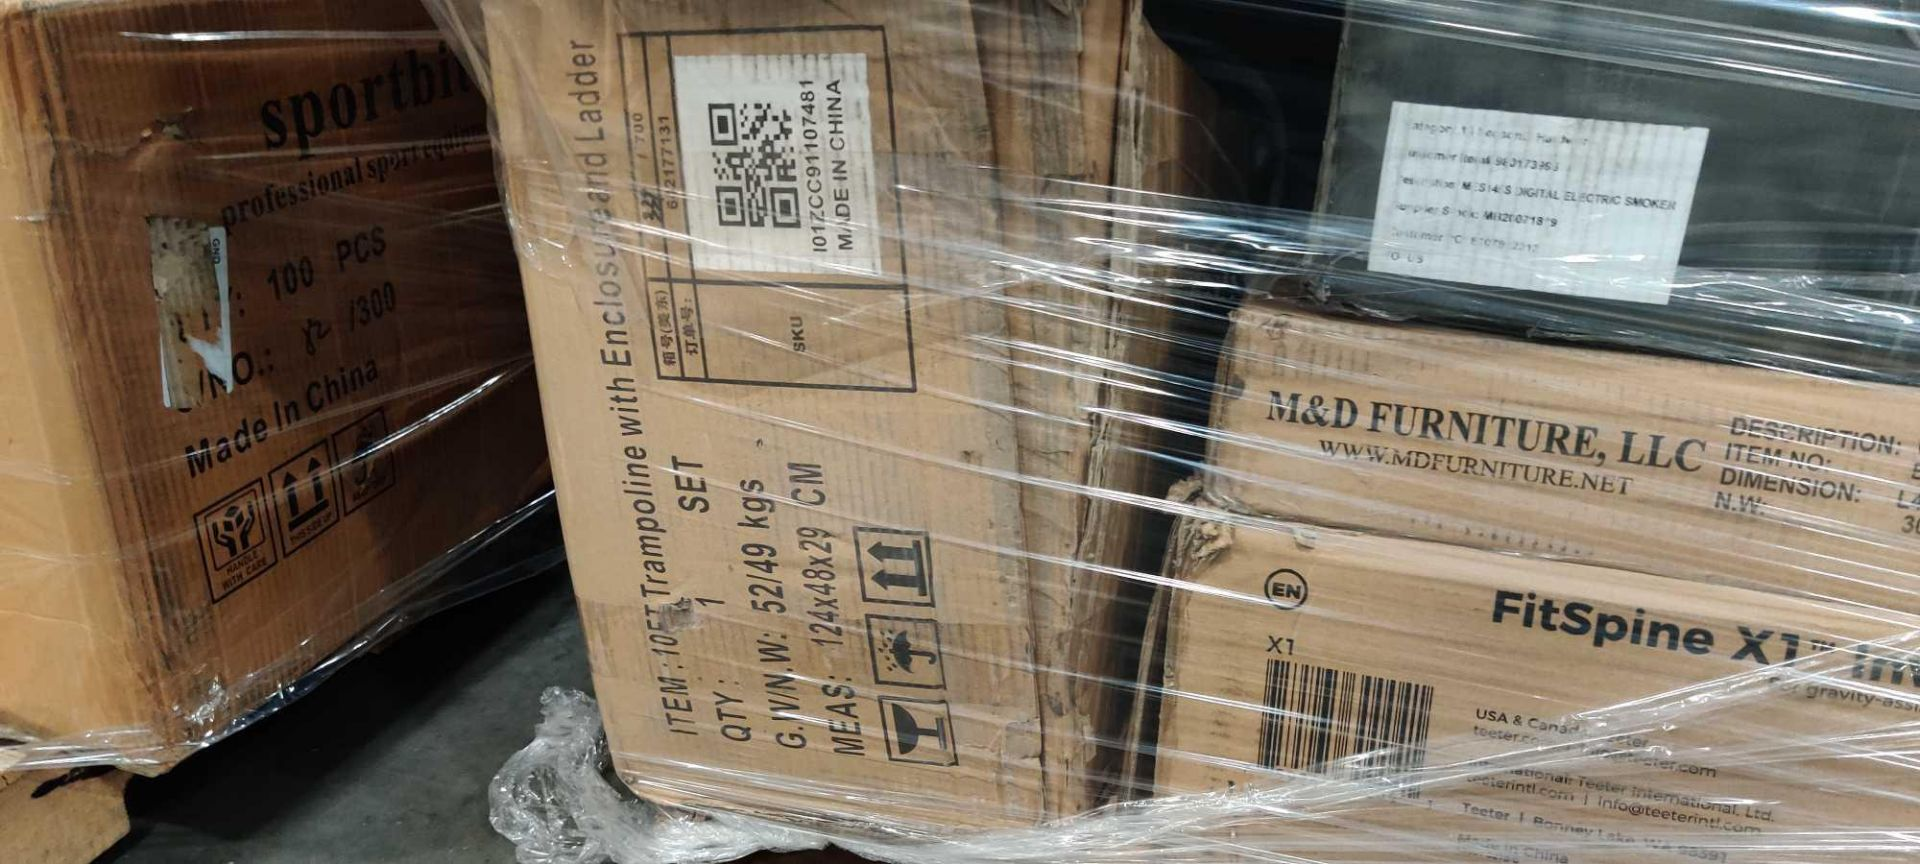 Two Pallets - Image 22 of 22